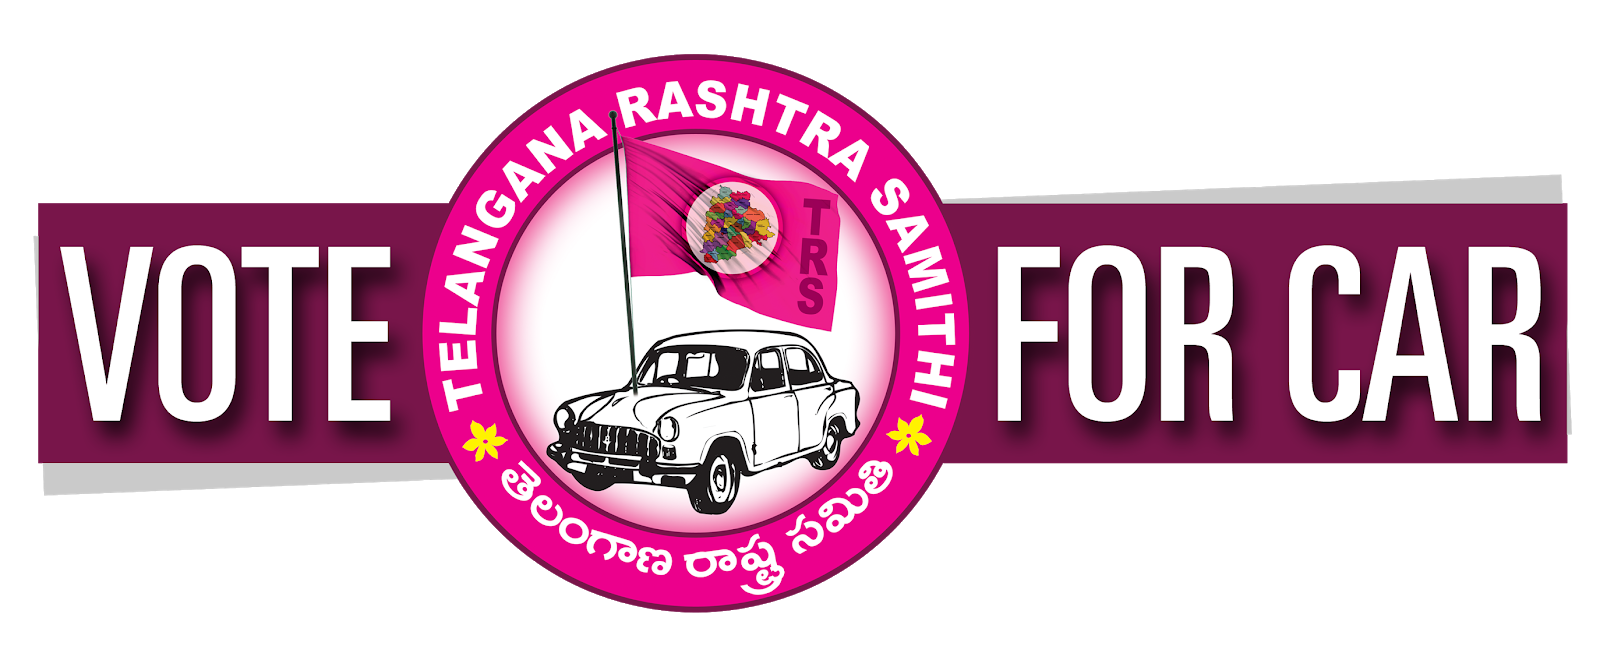 trs party vote for car transparent hd png logo free.